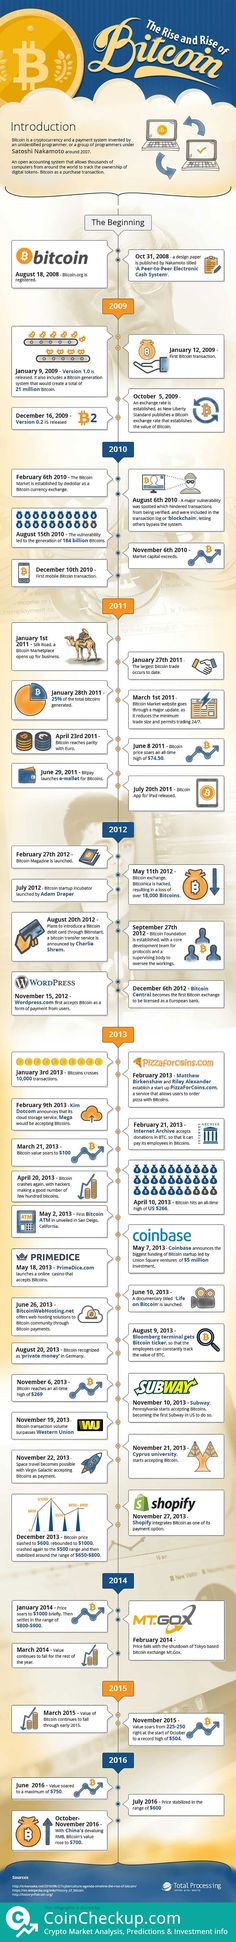 Bitcoin, How we got where we are today.  By: CoinCheckup - The Crypto Analysis, Price predictions & Investment Stats. #bitcoin #btc #ethereum #litecoin #cryptocurrency #crypto #money #forex